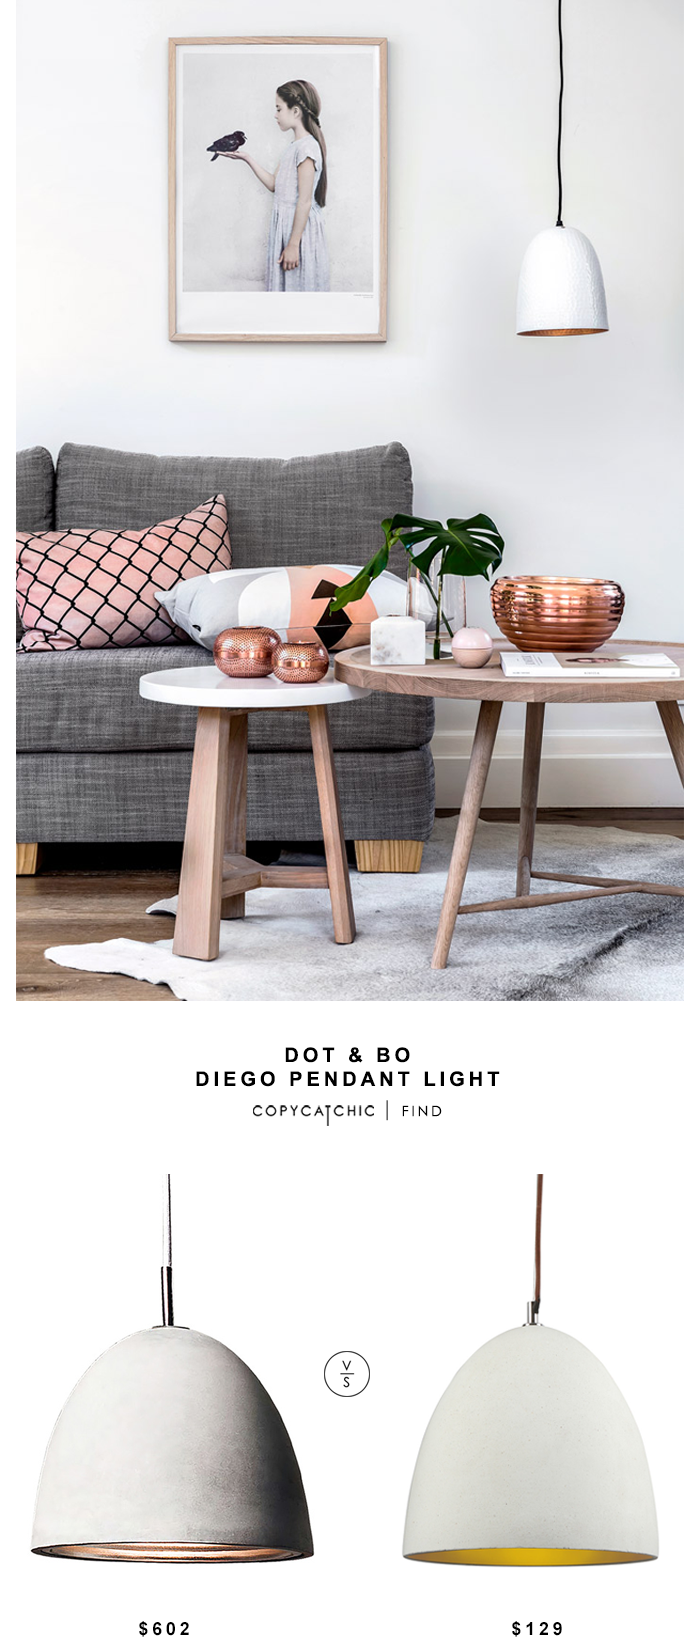 Dot & Bo Diego Pendant Light for $602 vs Temple & Webster Stone Luminite Concrete Oval Pendant Lamp for $129 | @copycatchic look for less budget home decor